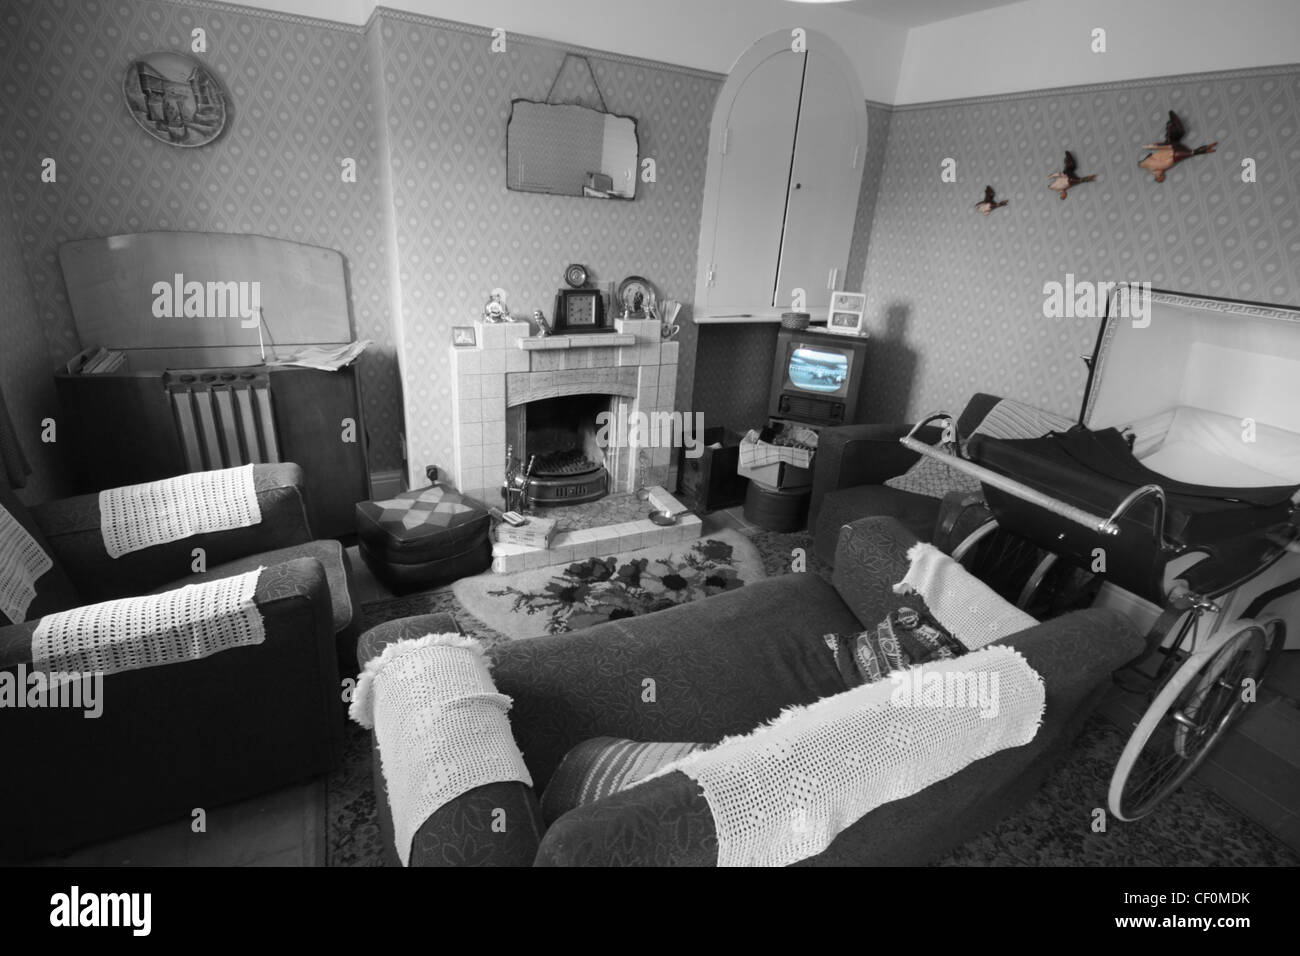 Example of a 1950's sitting room, complete with 405 line television. - Stock Image